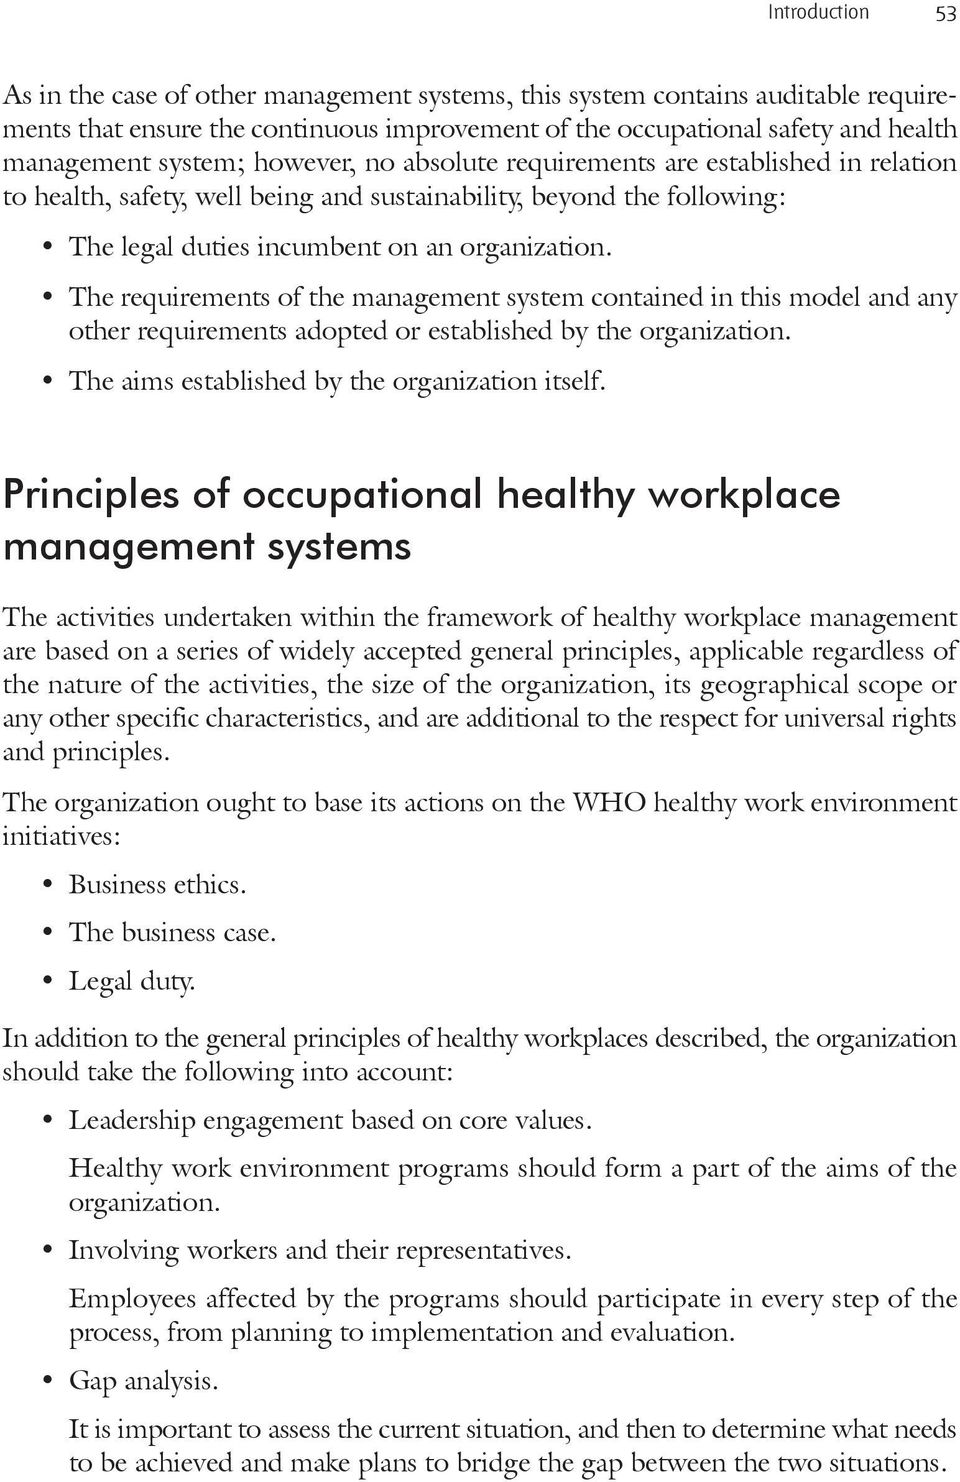 The requirements of the management system contained in this model and any other requirements adopted or established by the organization. The aims established by the organization itself.